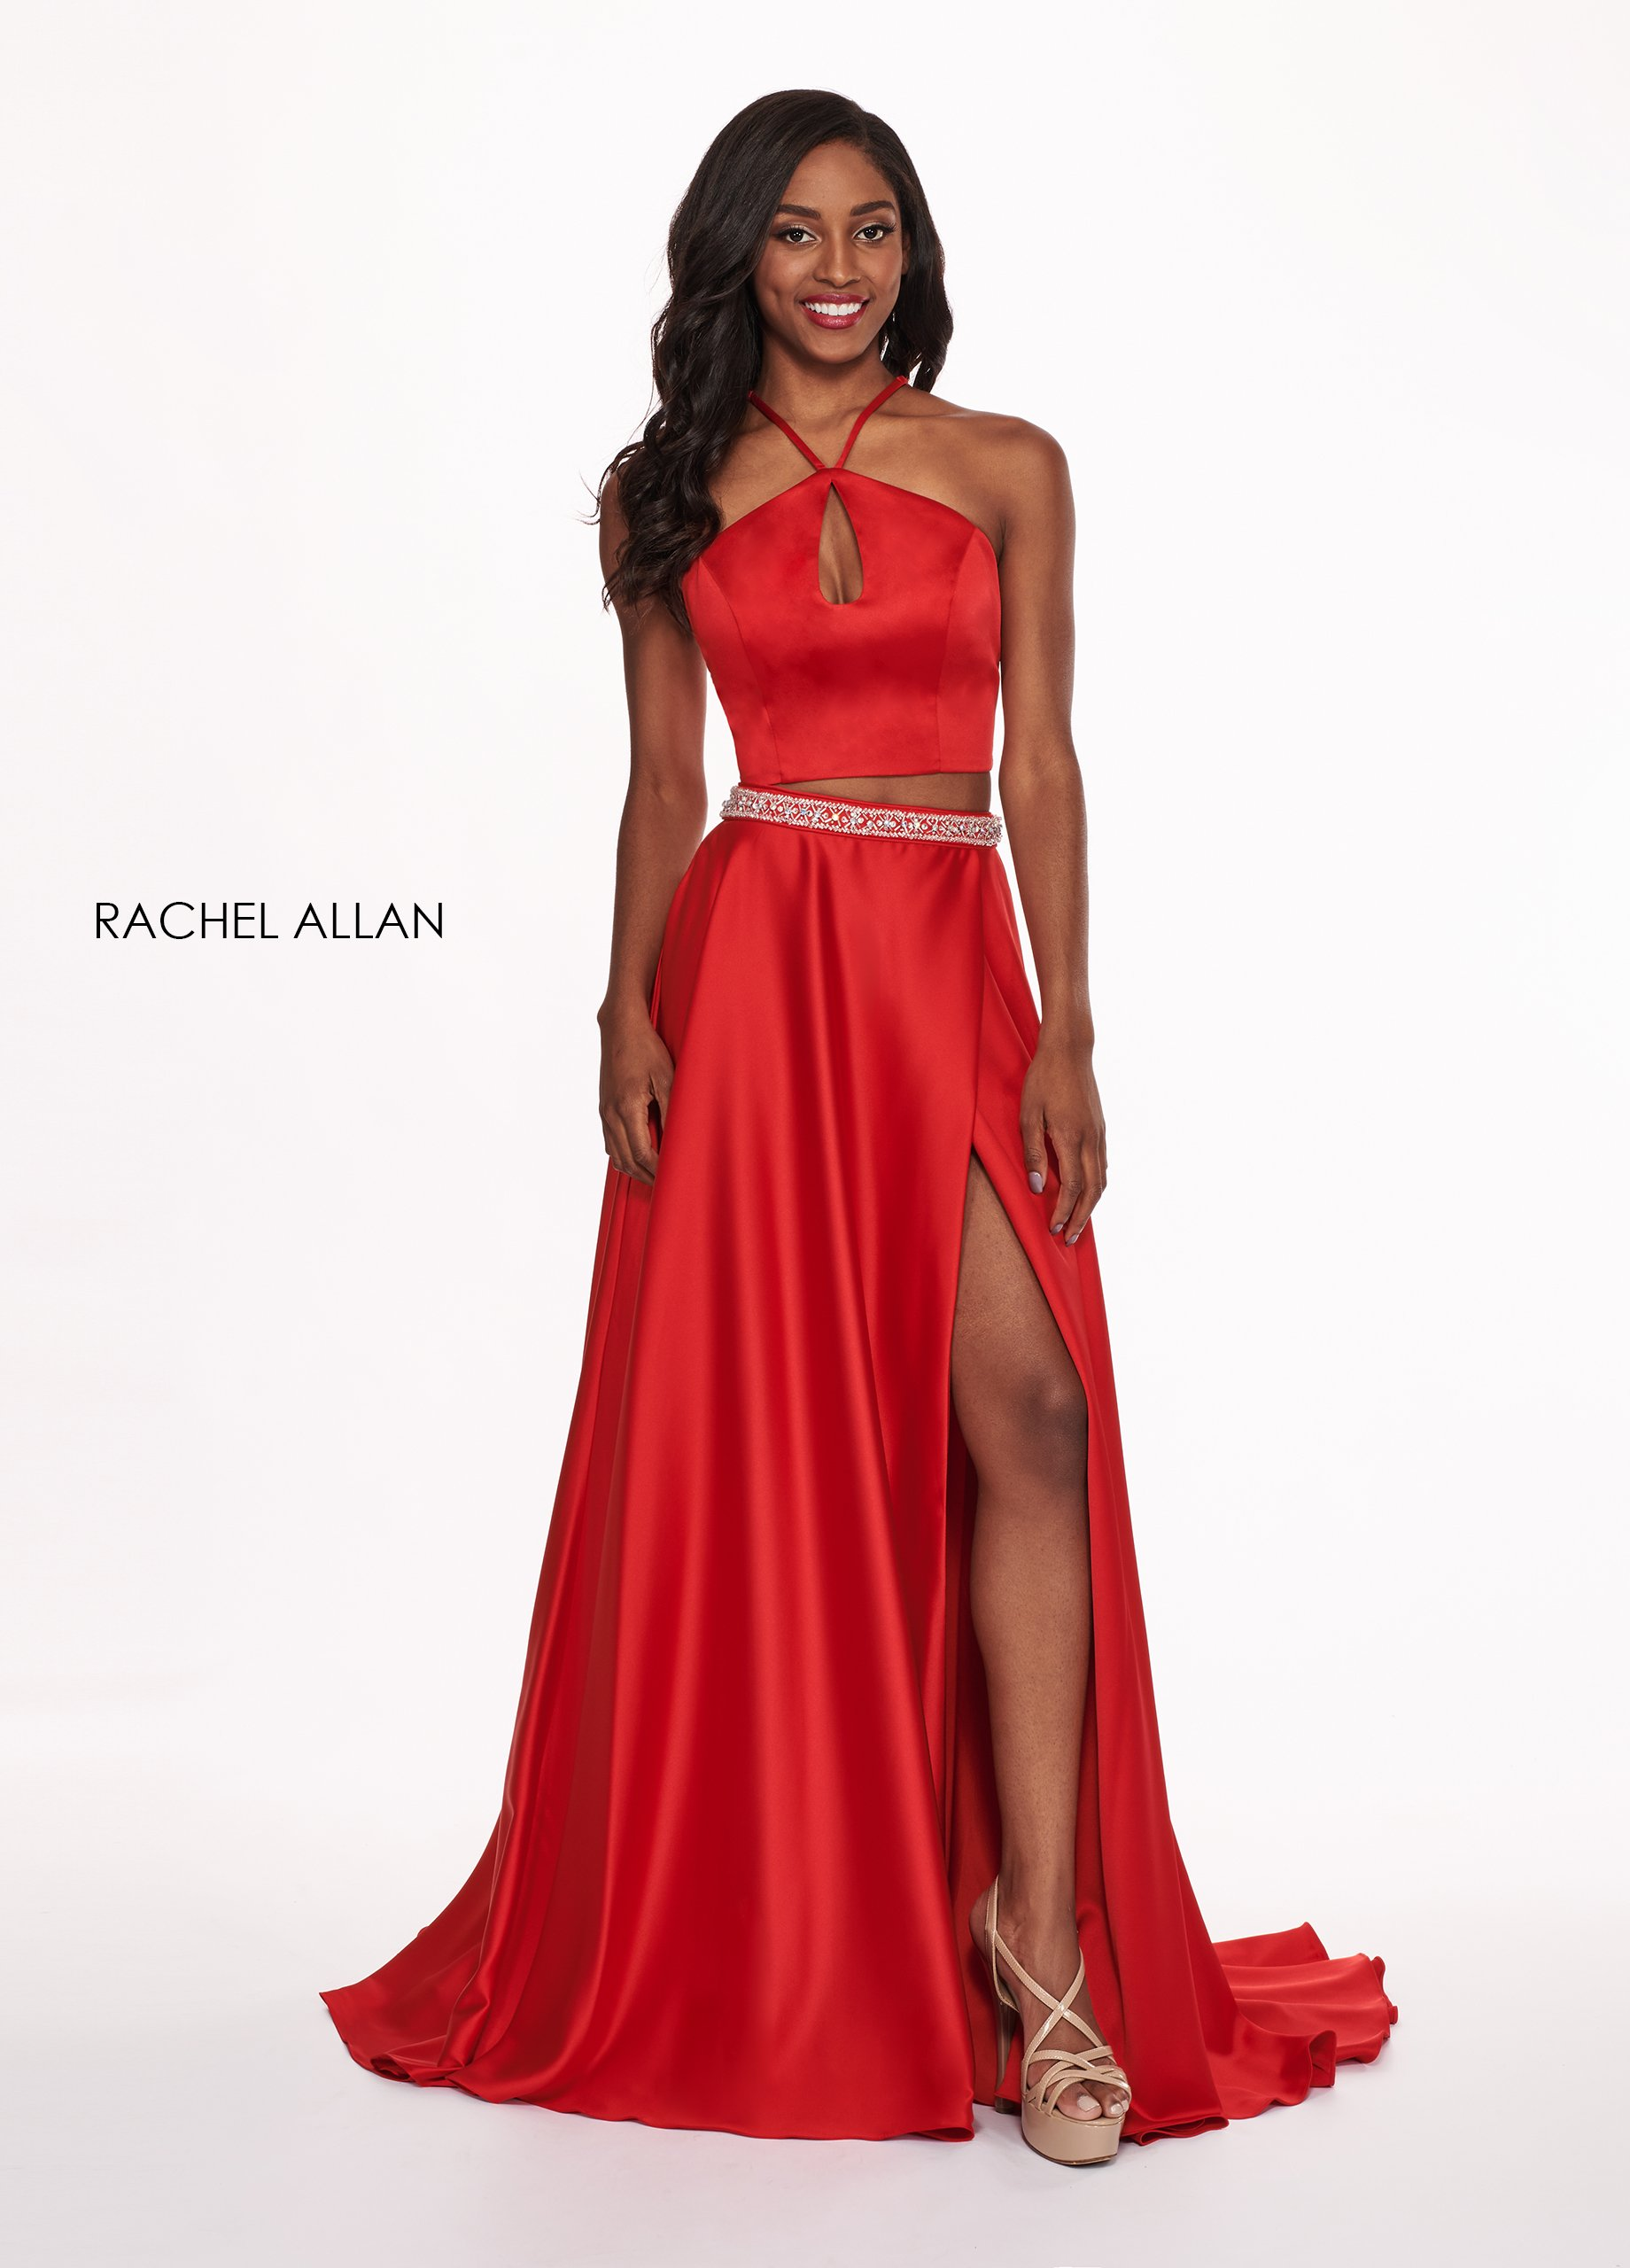 Halter Two-Piece Prom Dresses in Red Color